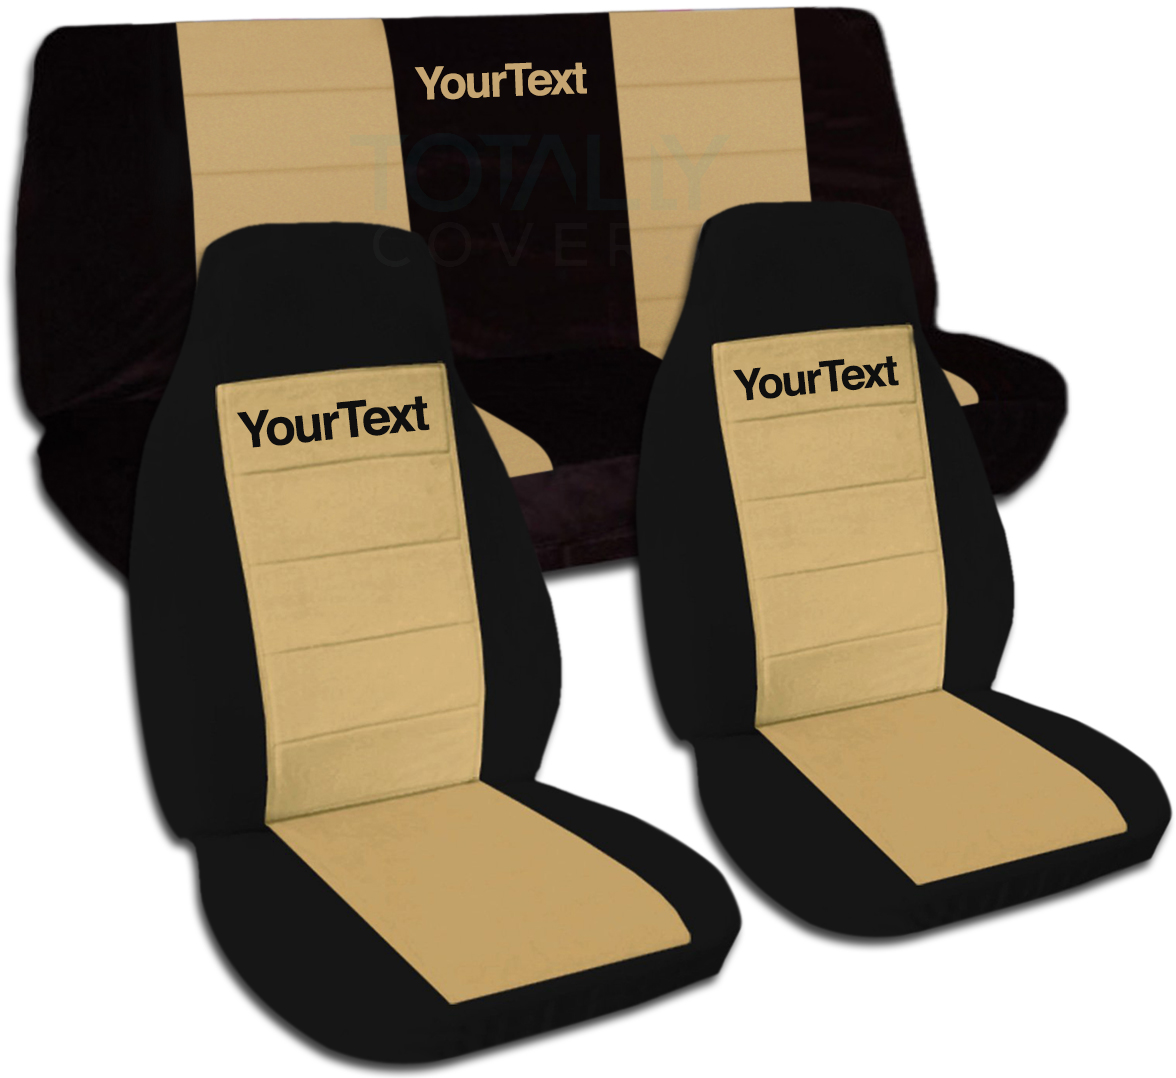 Jeep Wrangler Yj Tj Jk Jl 1987 2020 Two Tone Seat Covers W